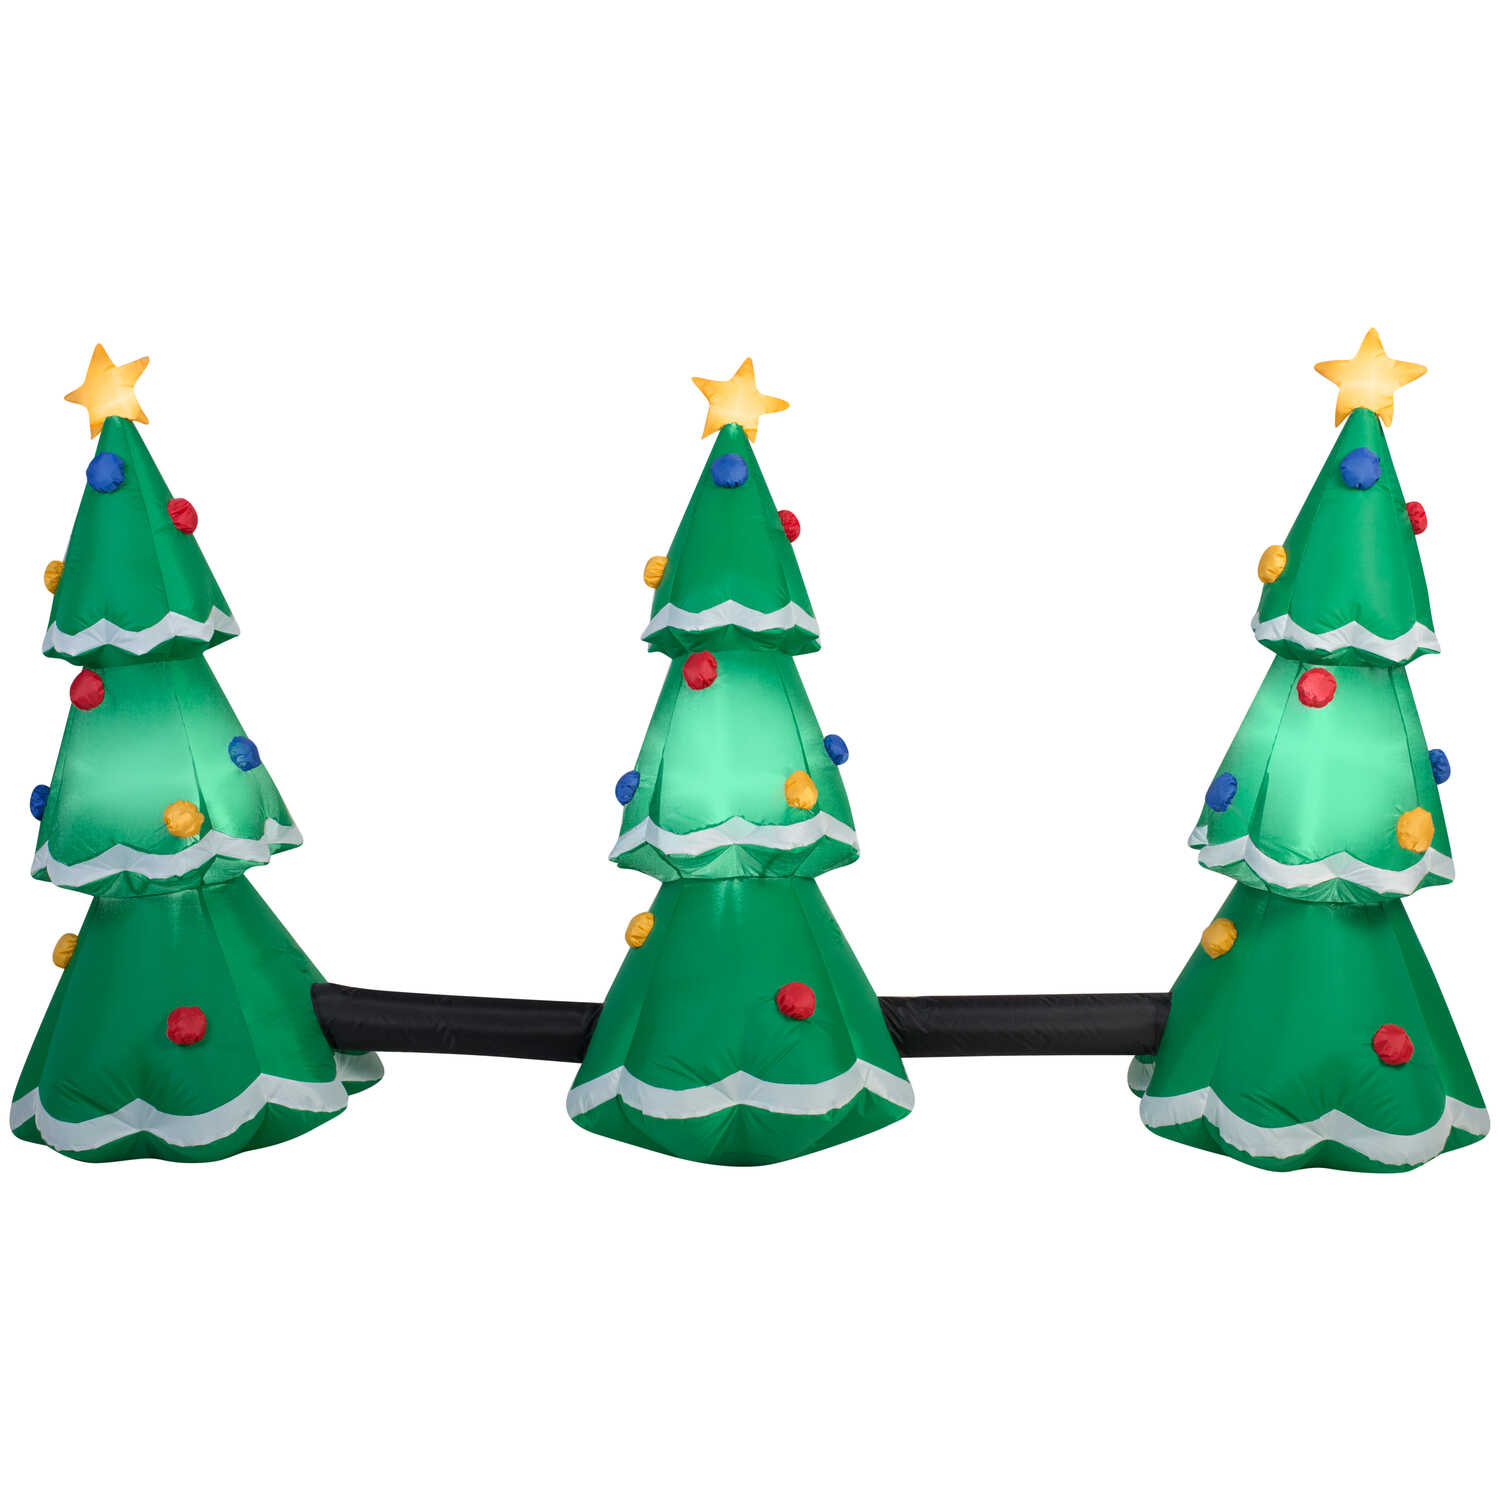 Gemmy  Airblown  3-Tree Light Show  Christmas Inflatable  Multicolored  1 pk Fabric